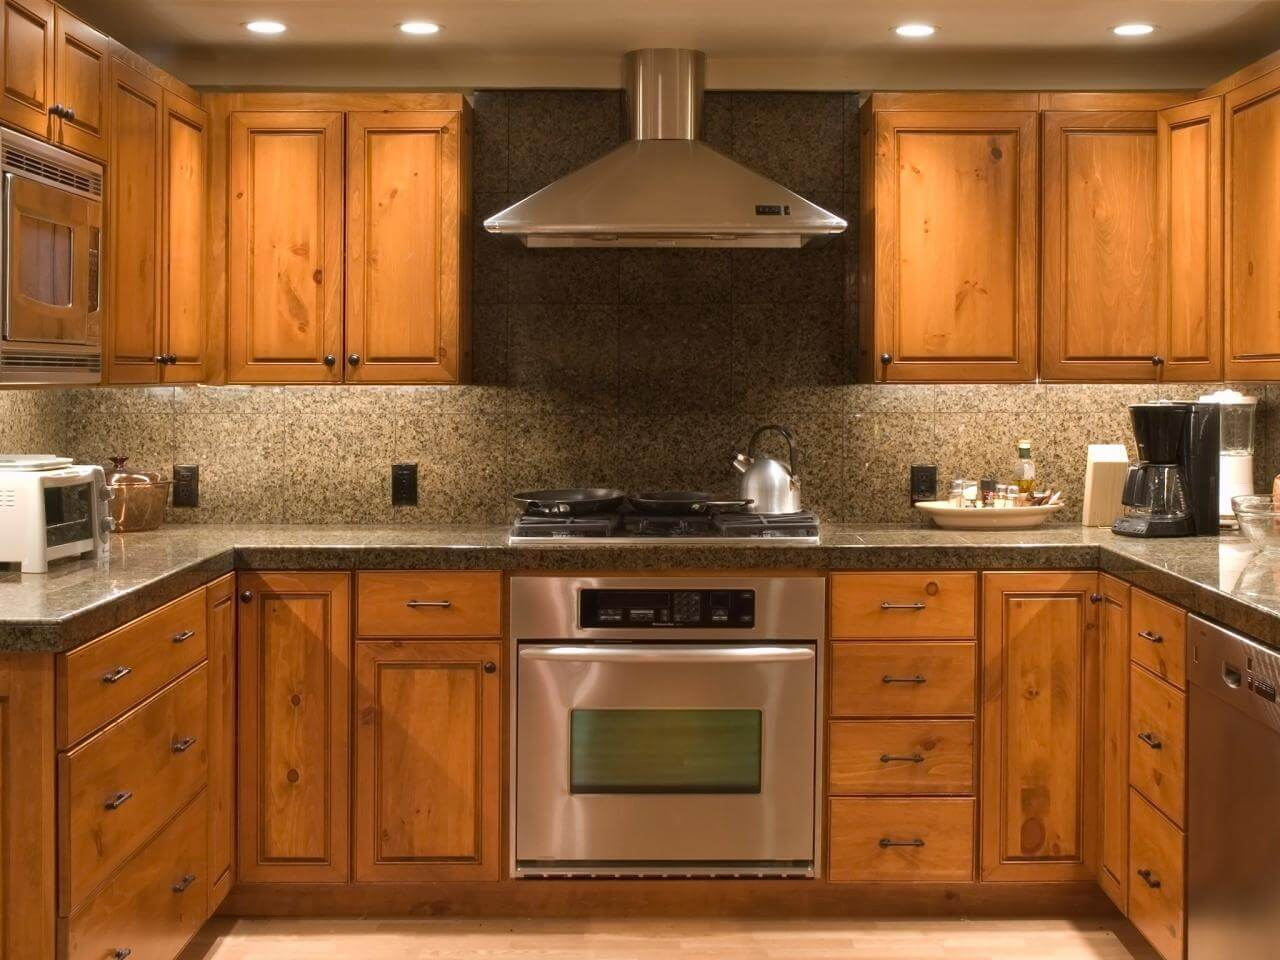 Kitchens are the best place to get a return on investment